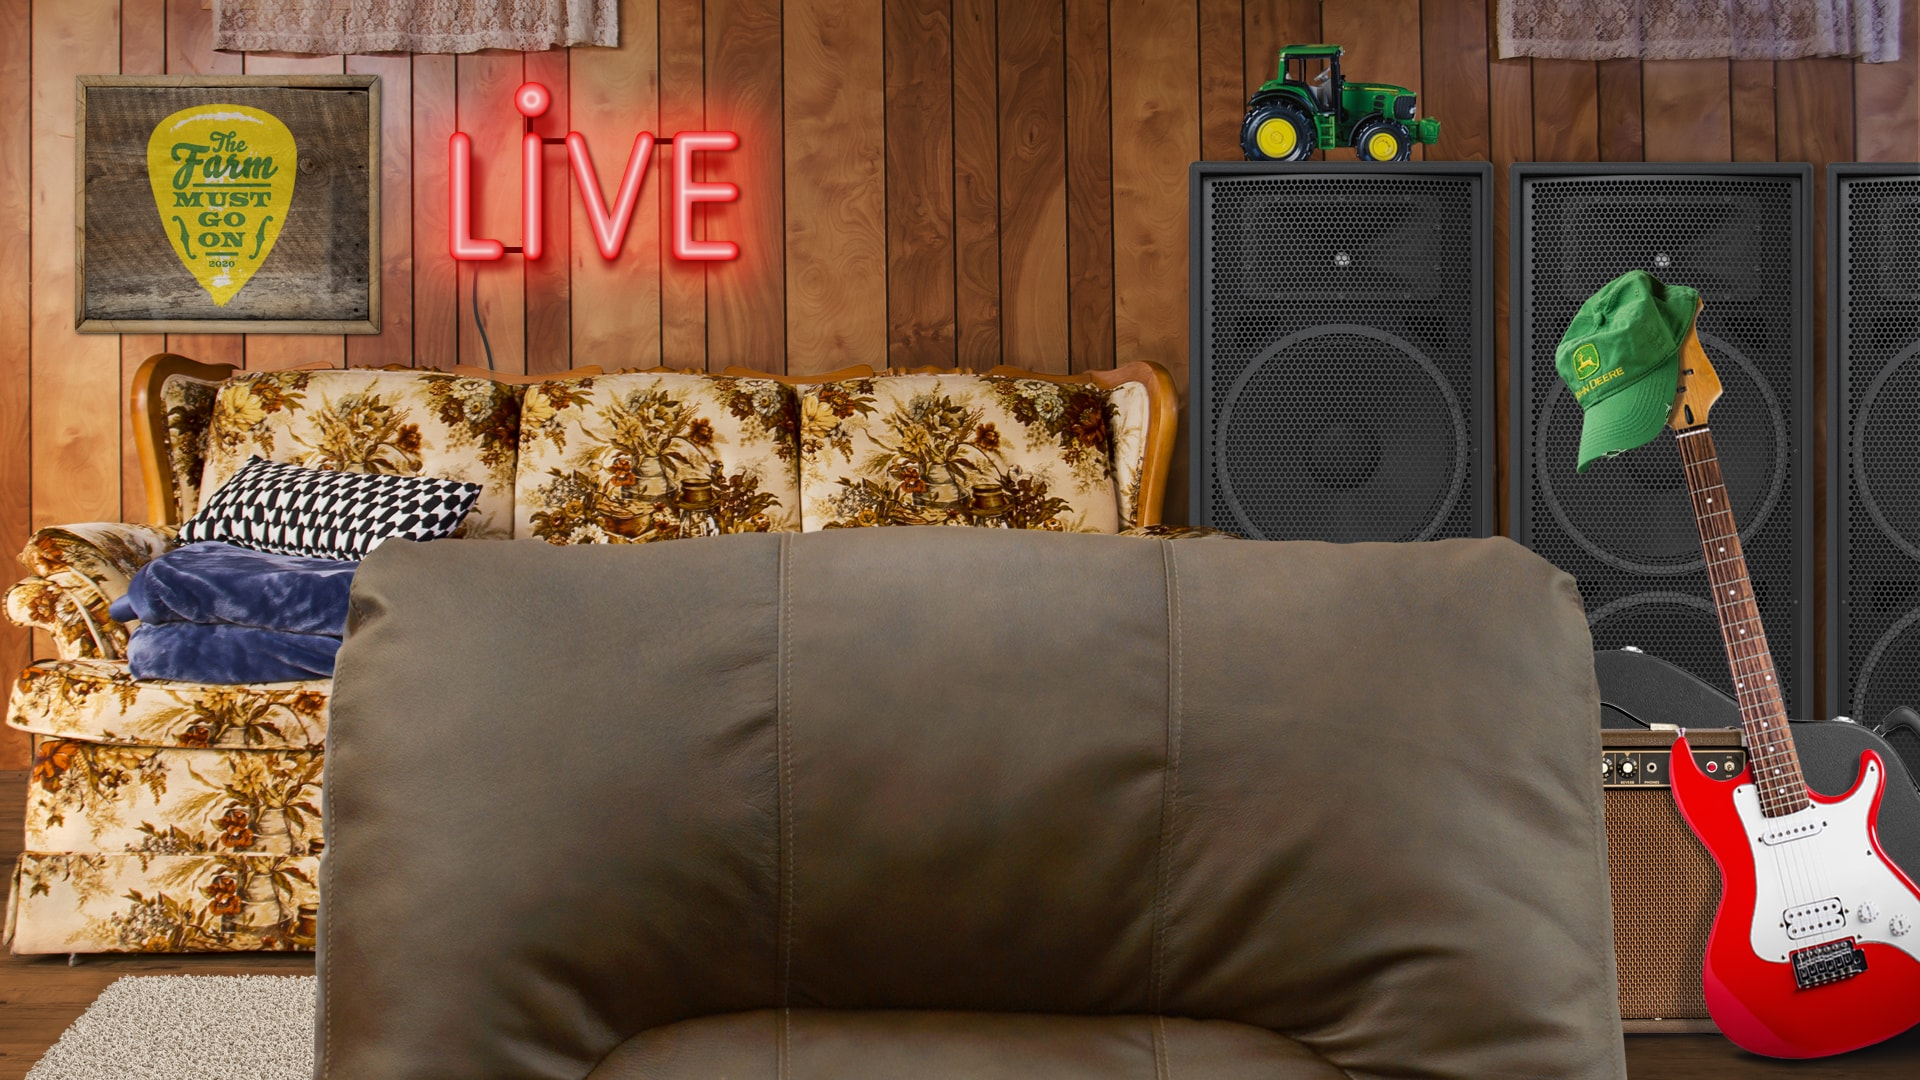 Rec room with chair back, concert poster, Live neon sign, sofa, guitar and speakers.